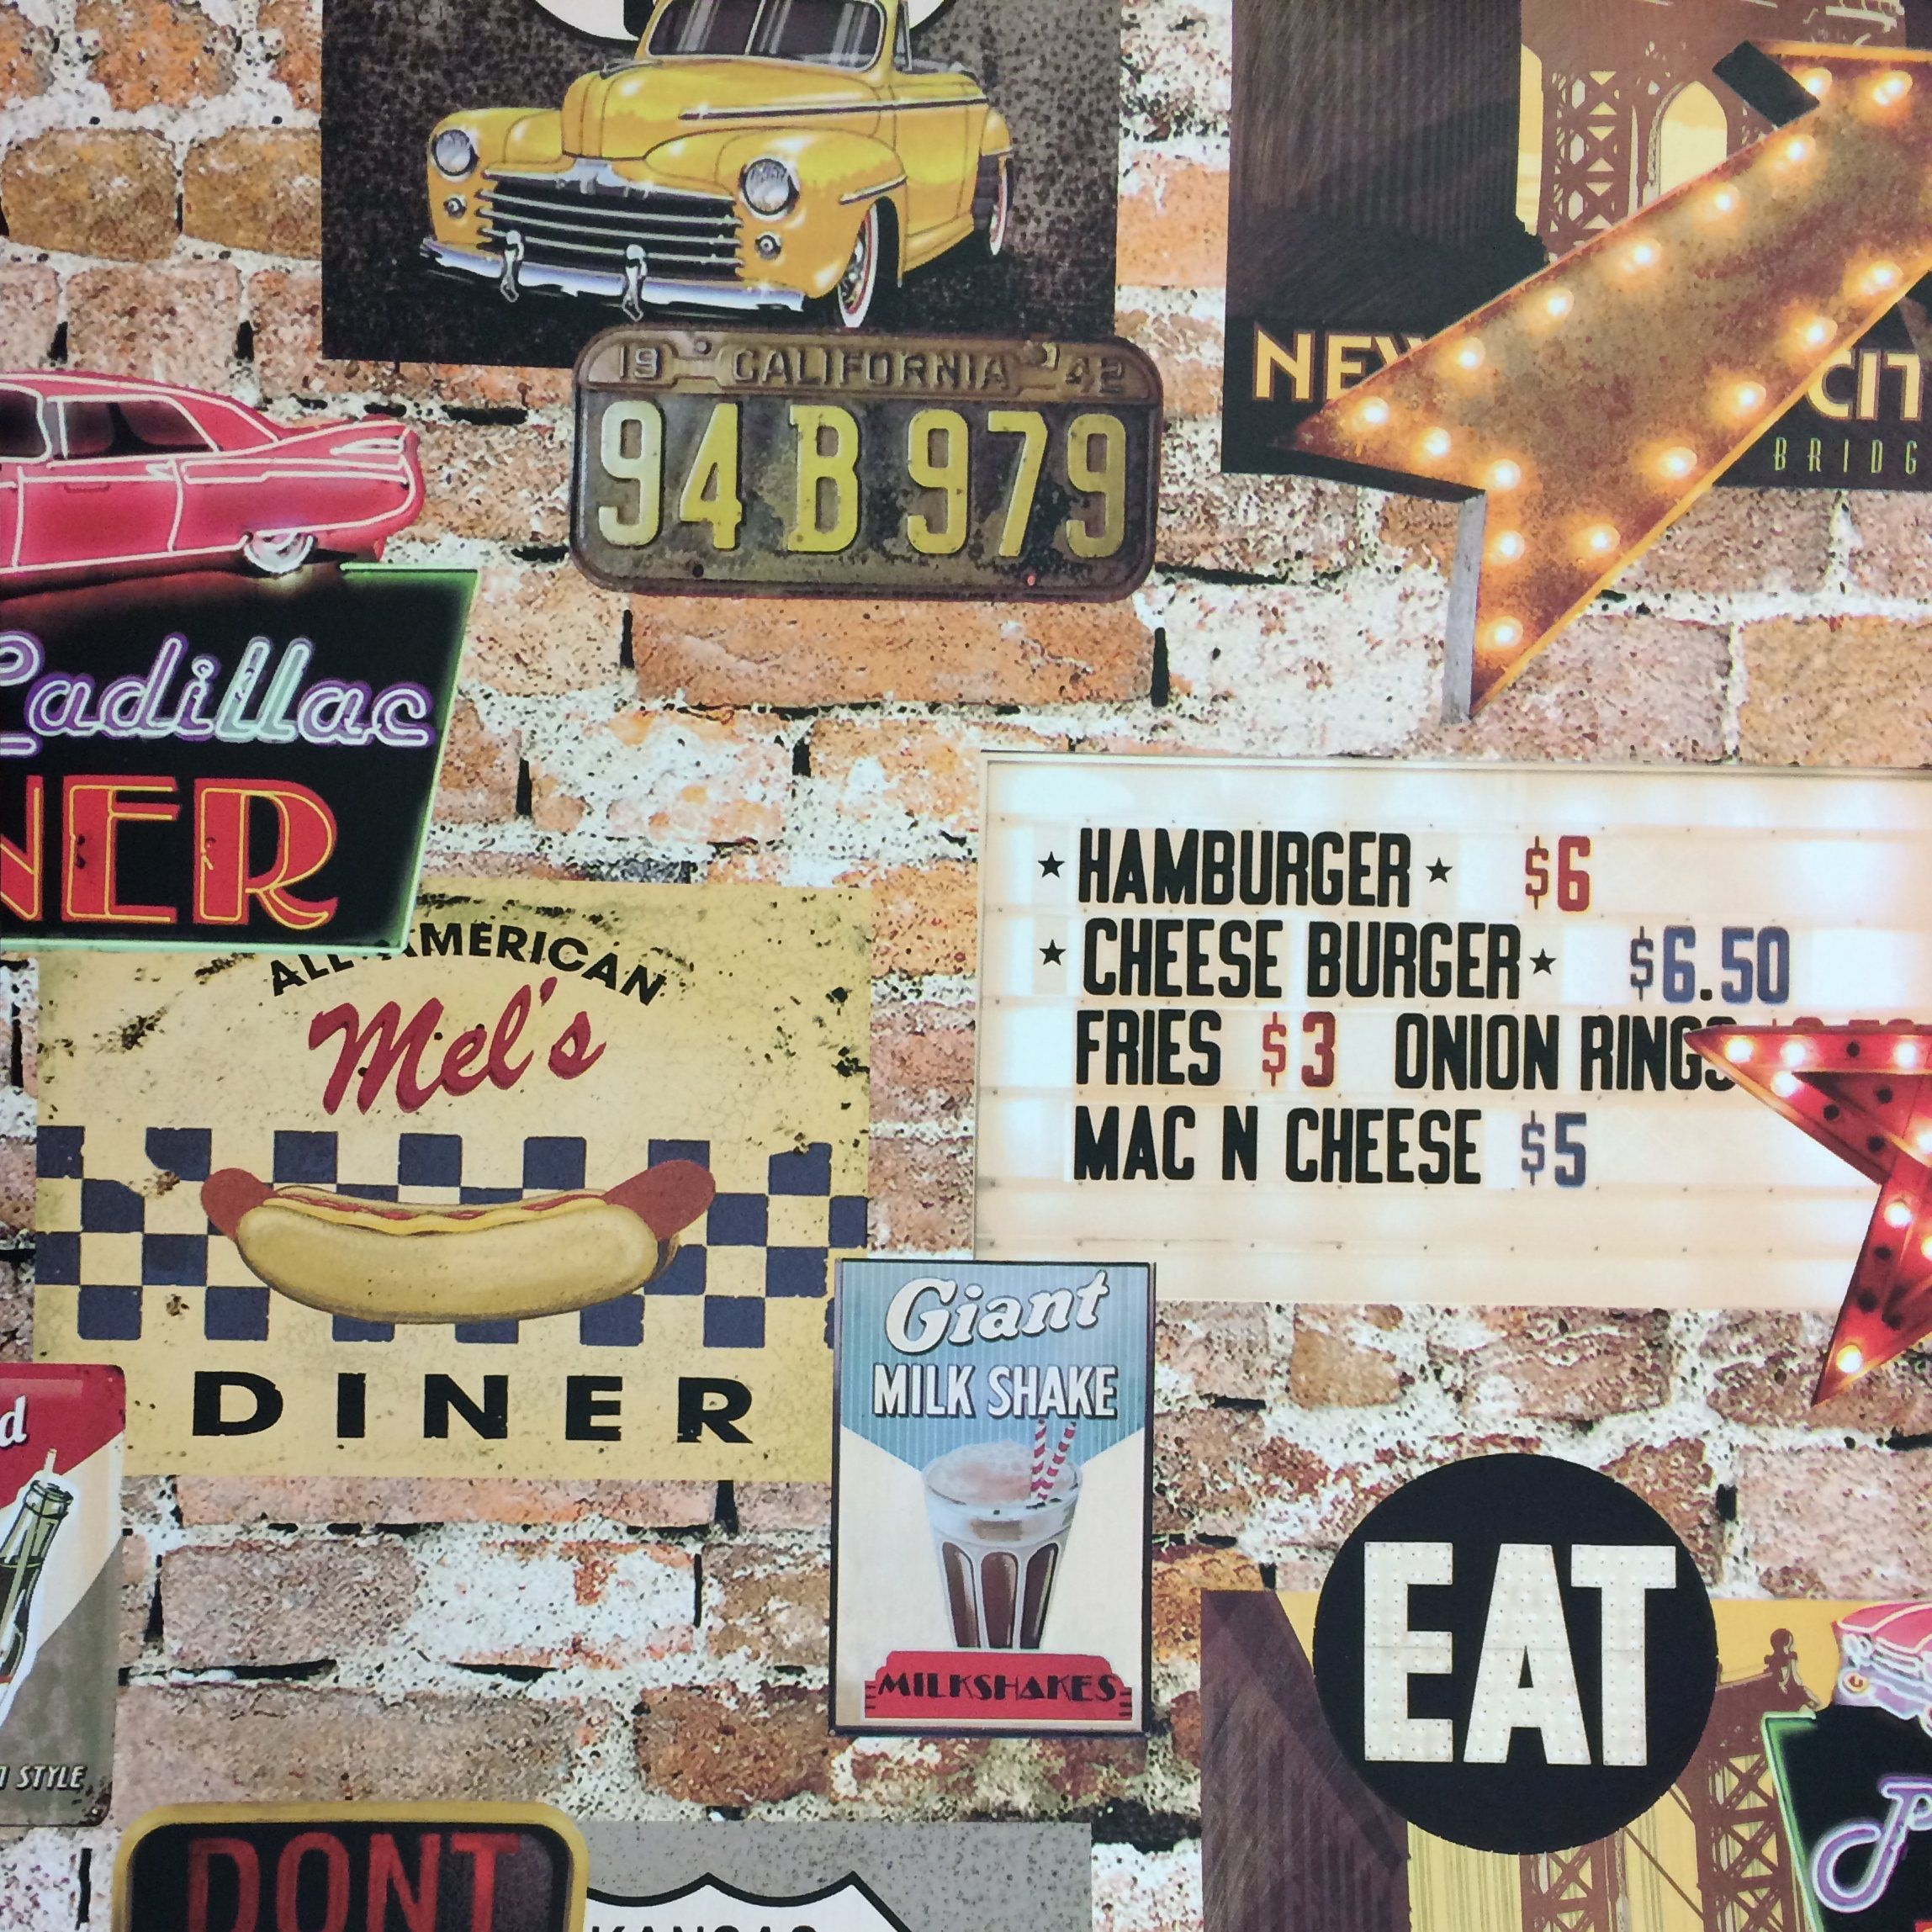 arthouse american diner wallpaper wall paper american diner 1950s diner dining. Black Bedroom Furniture Sets. Home Design Ideas